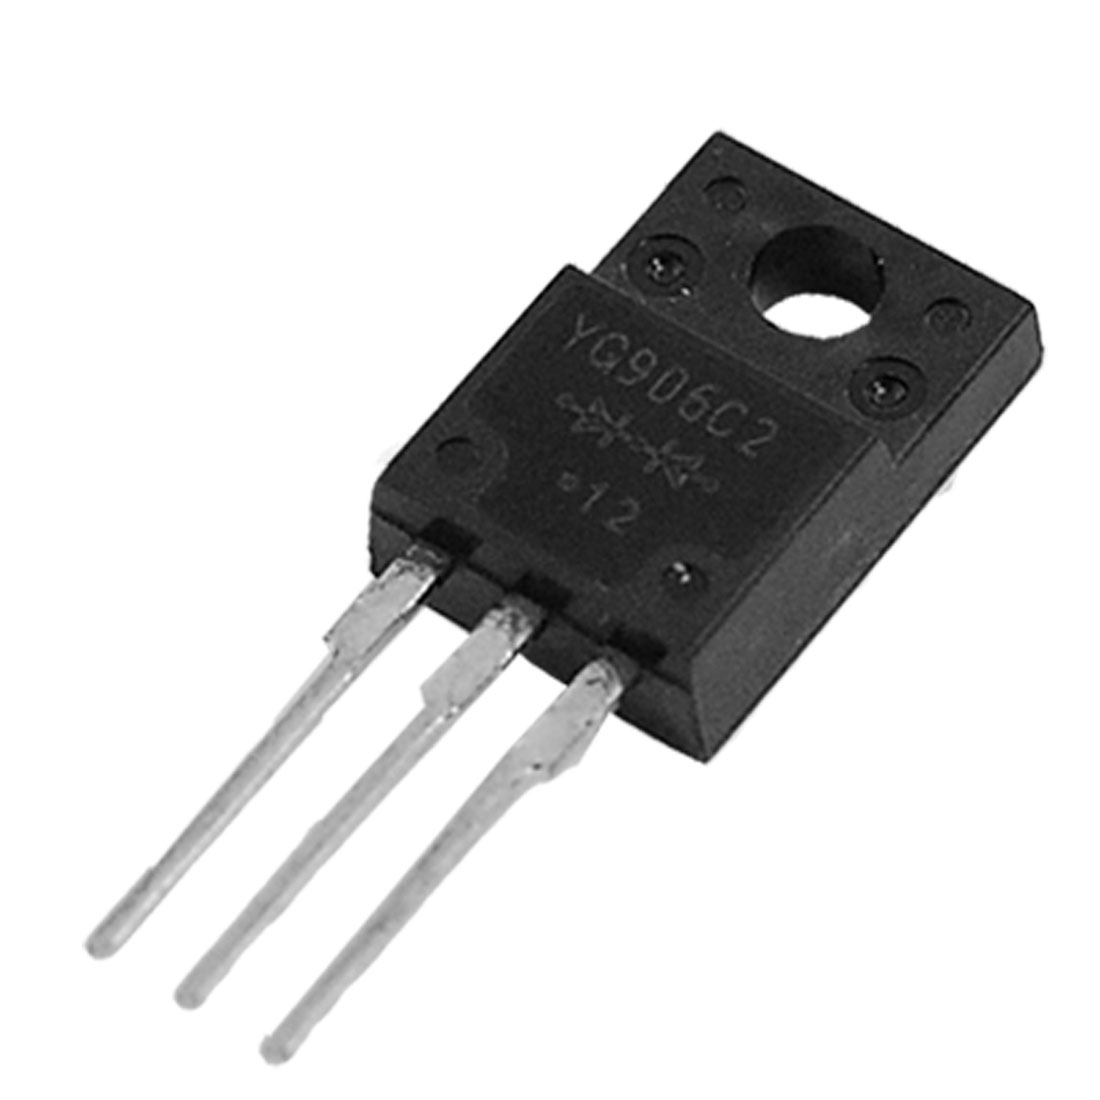 200V 20A Power Switching YG906C2R Fast Recovery Diode